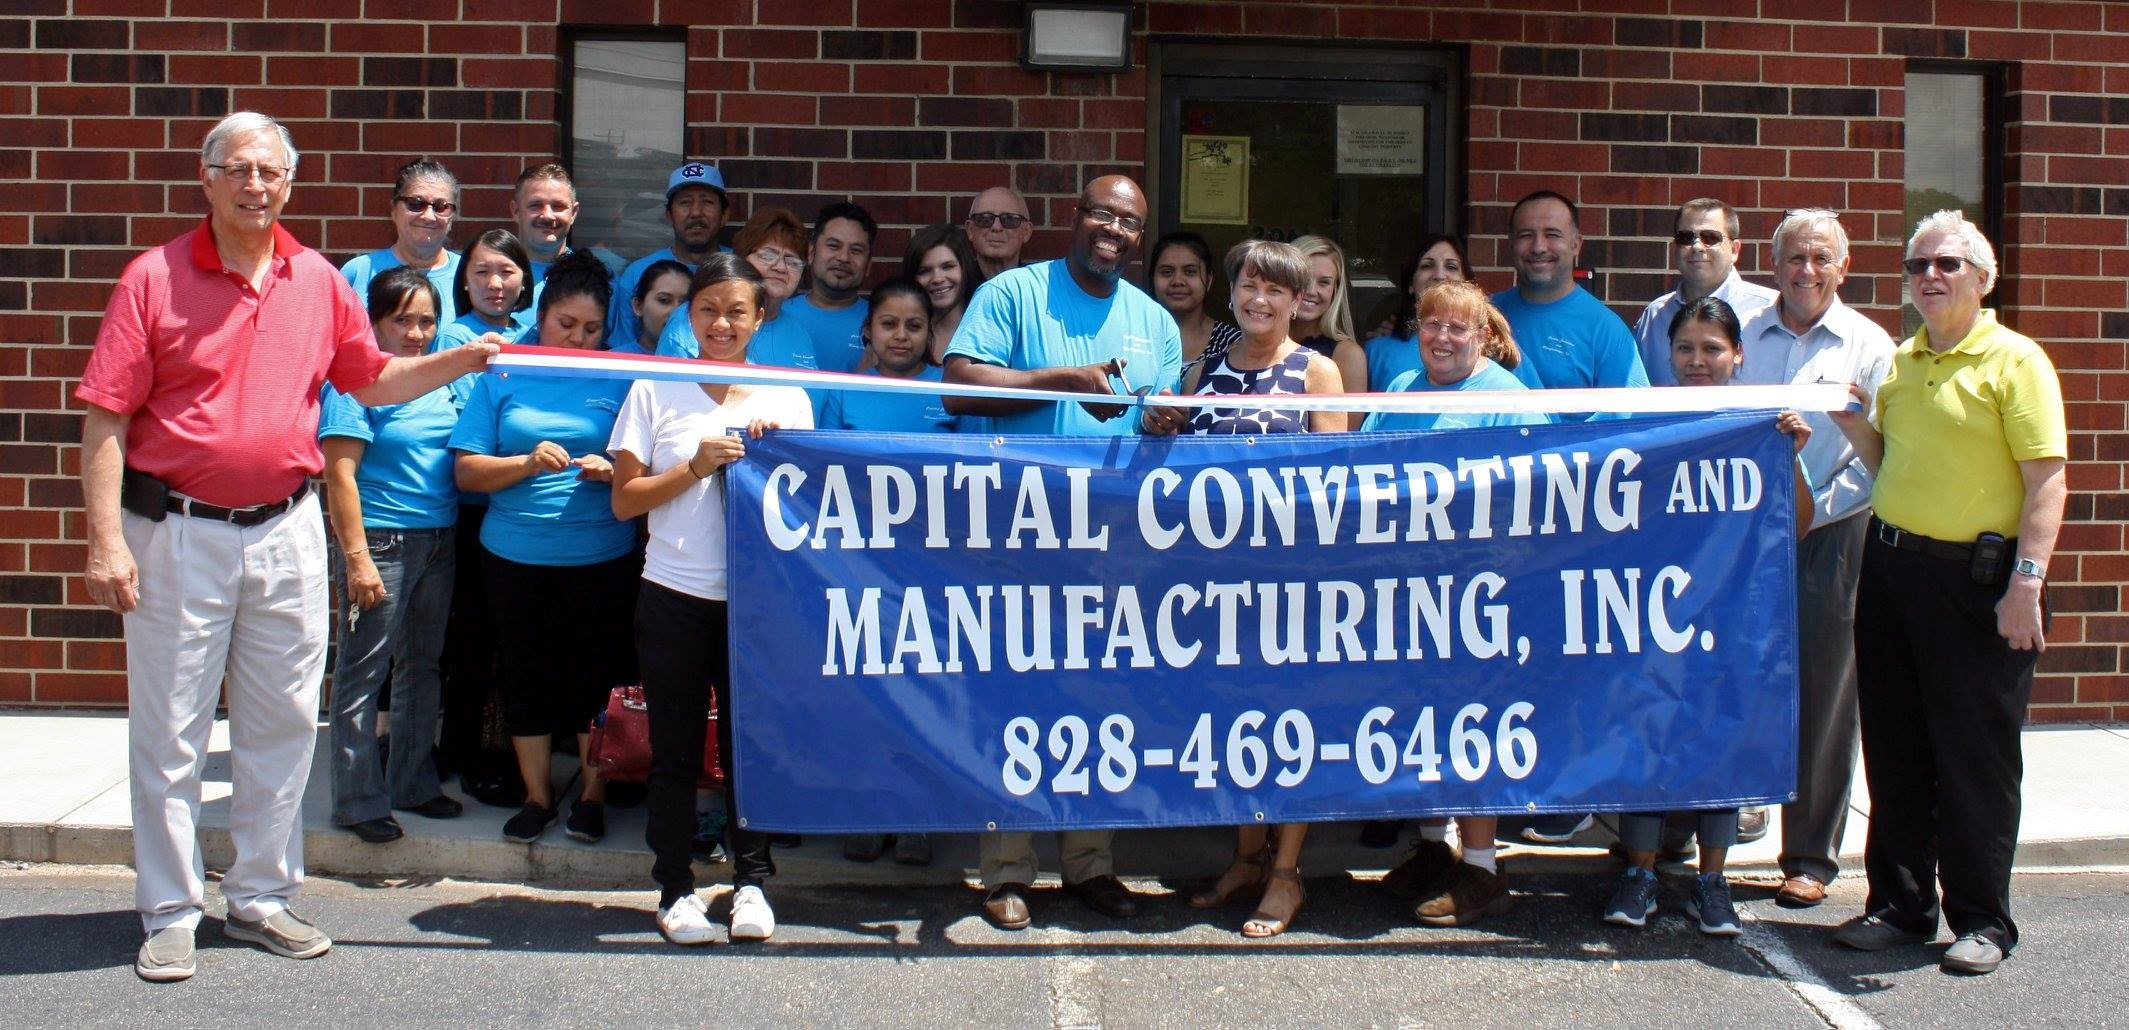 Capital Converting and Manufacturing is now open at 2066 Industrial Drive, Newton. The new business makes covers for loads of lumber that are transported across the country by truck or train.